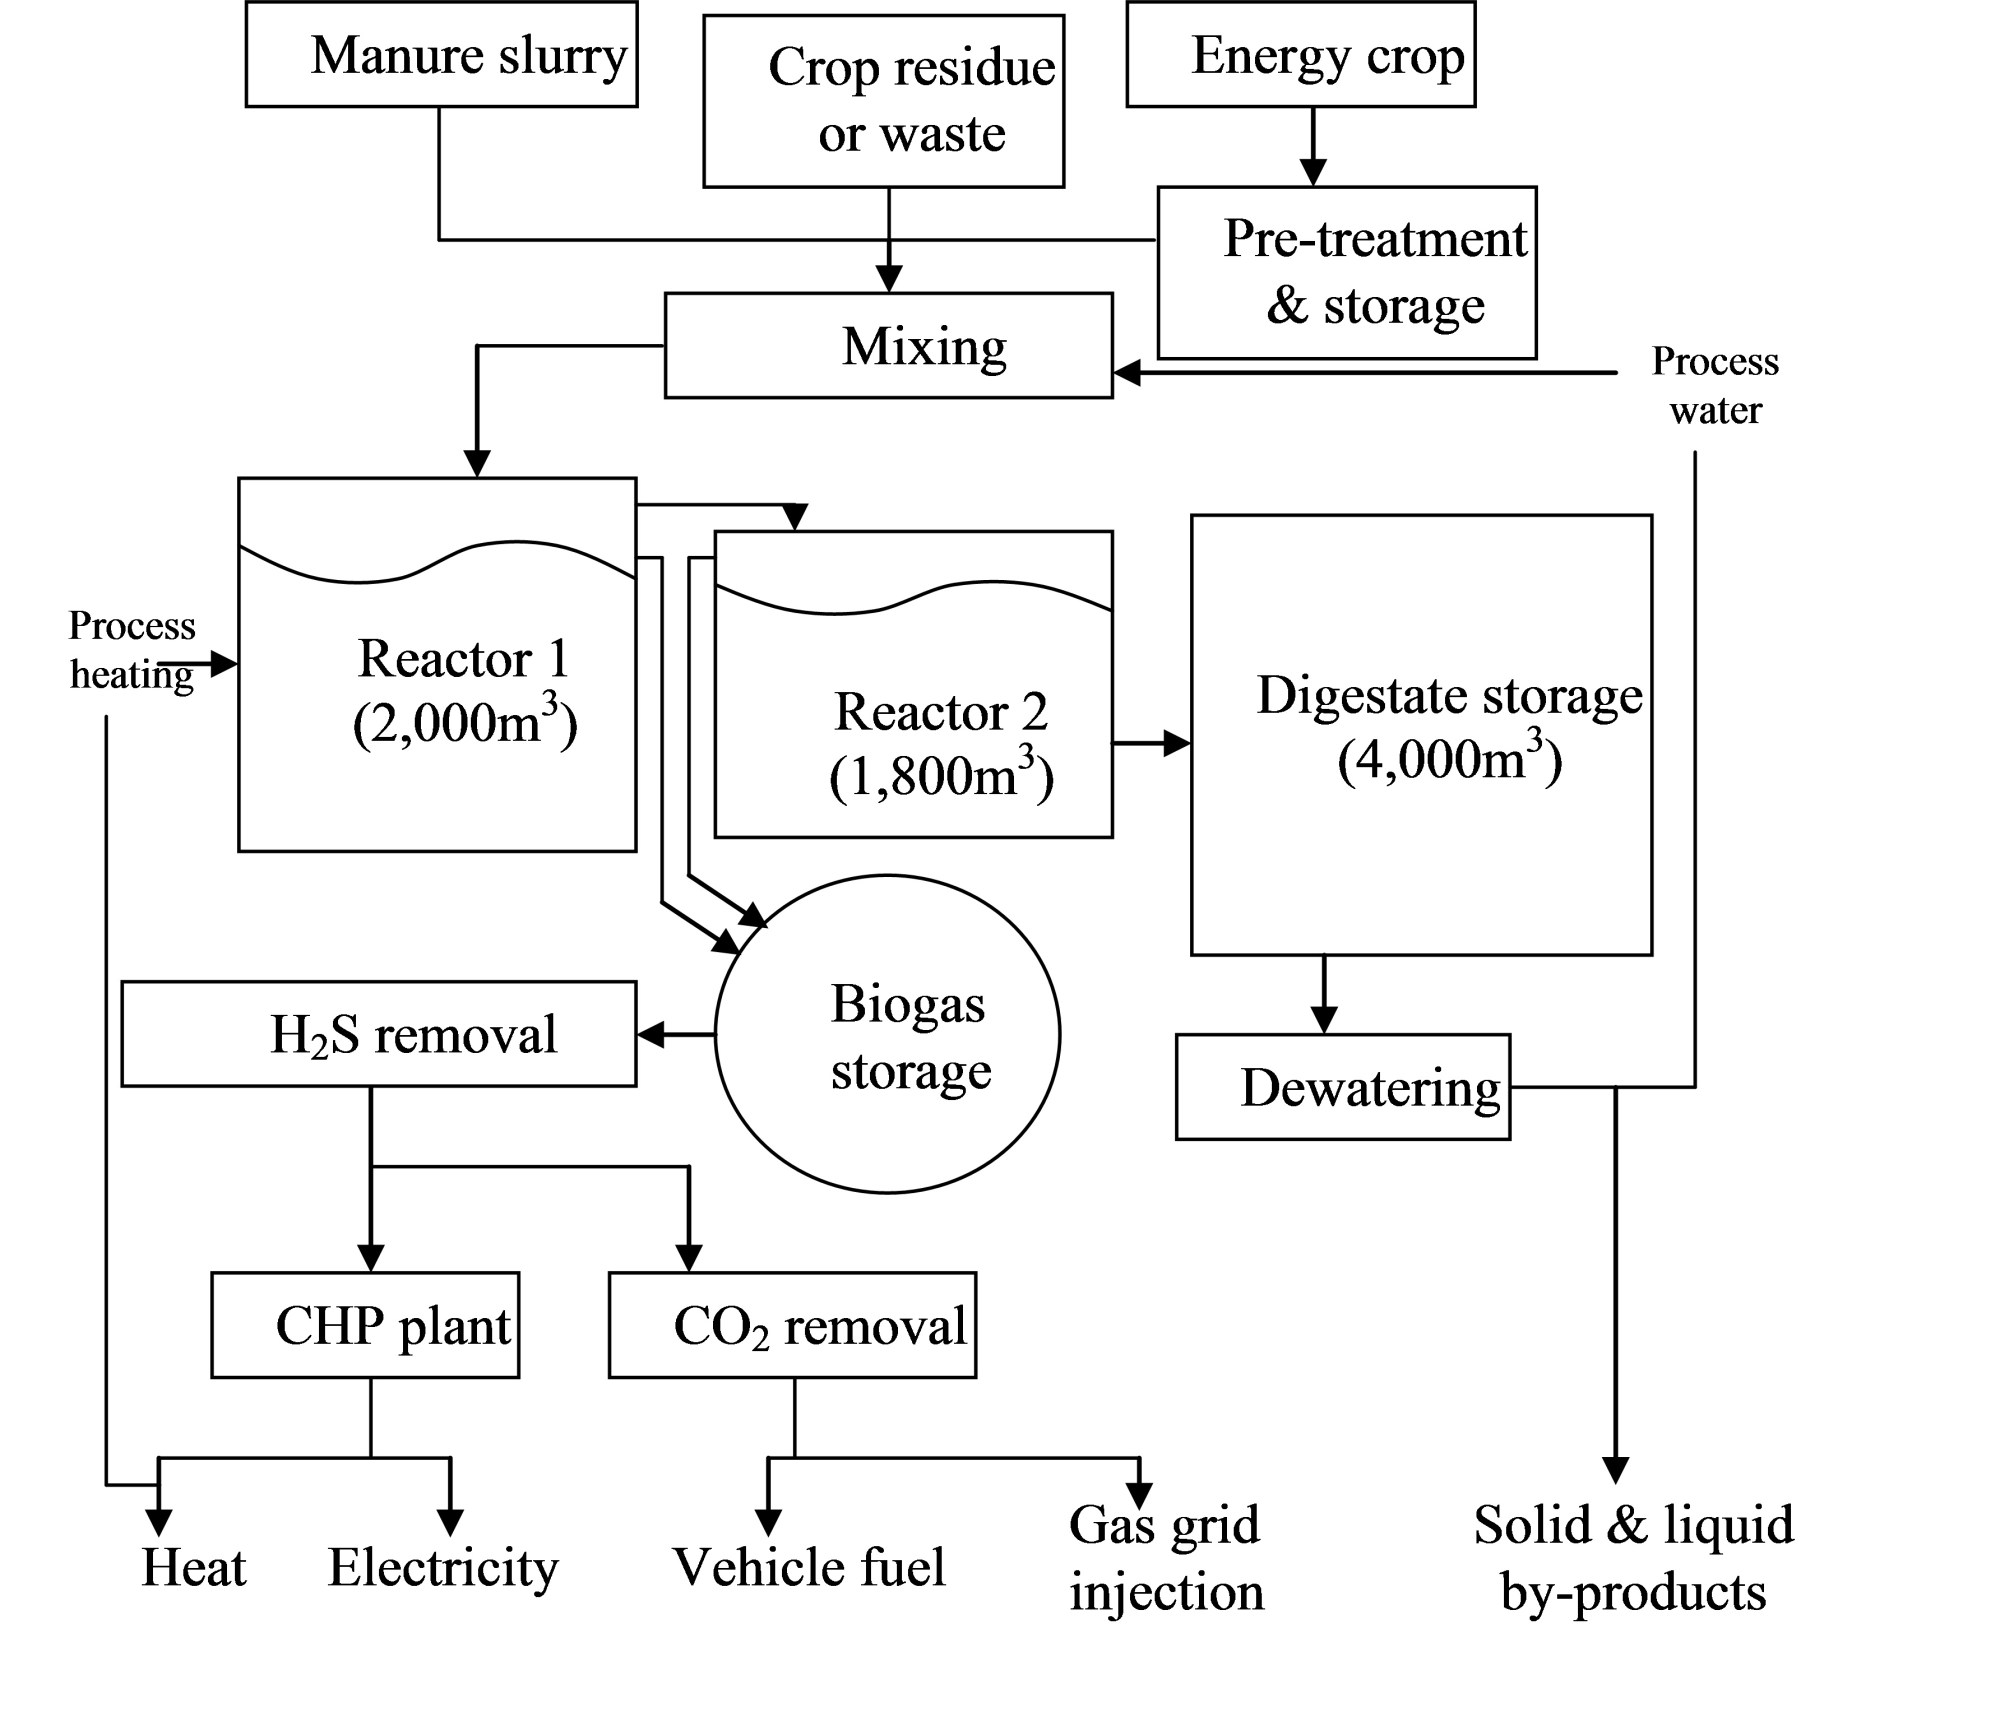 hight resolution of figure 3 typical process flow diagram